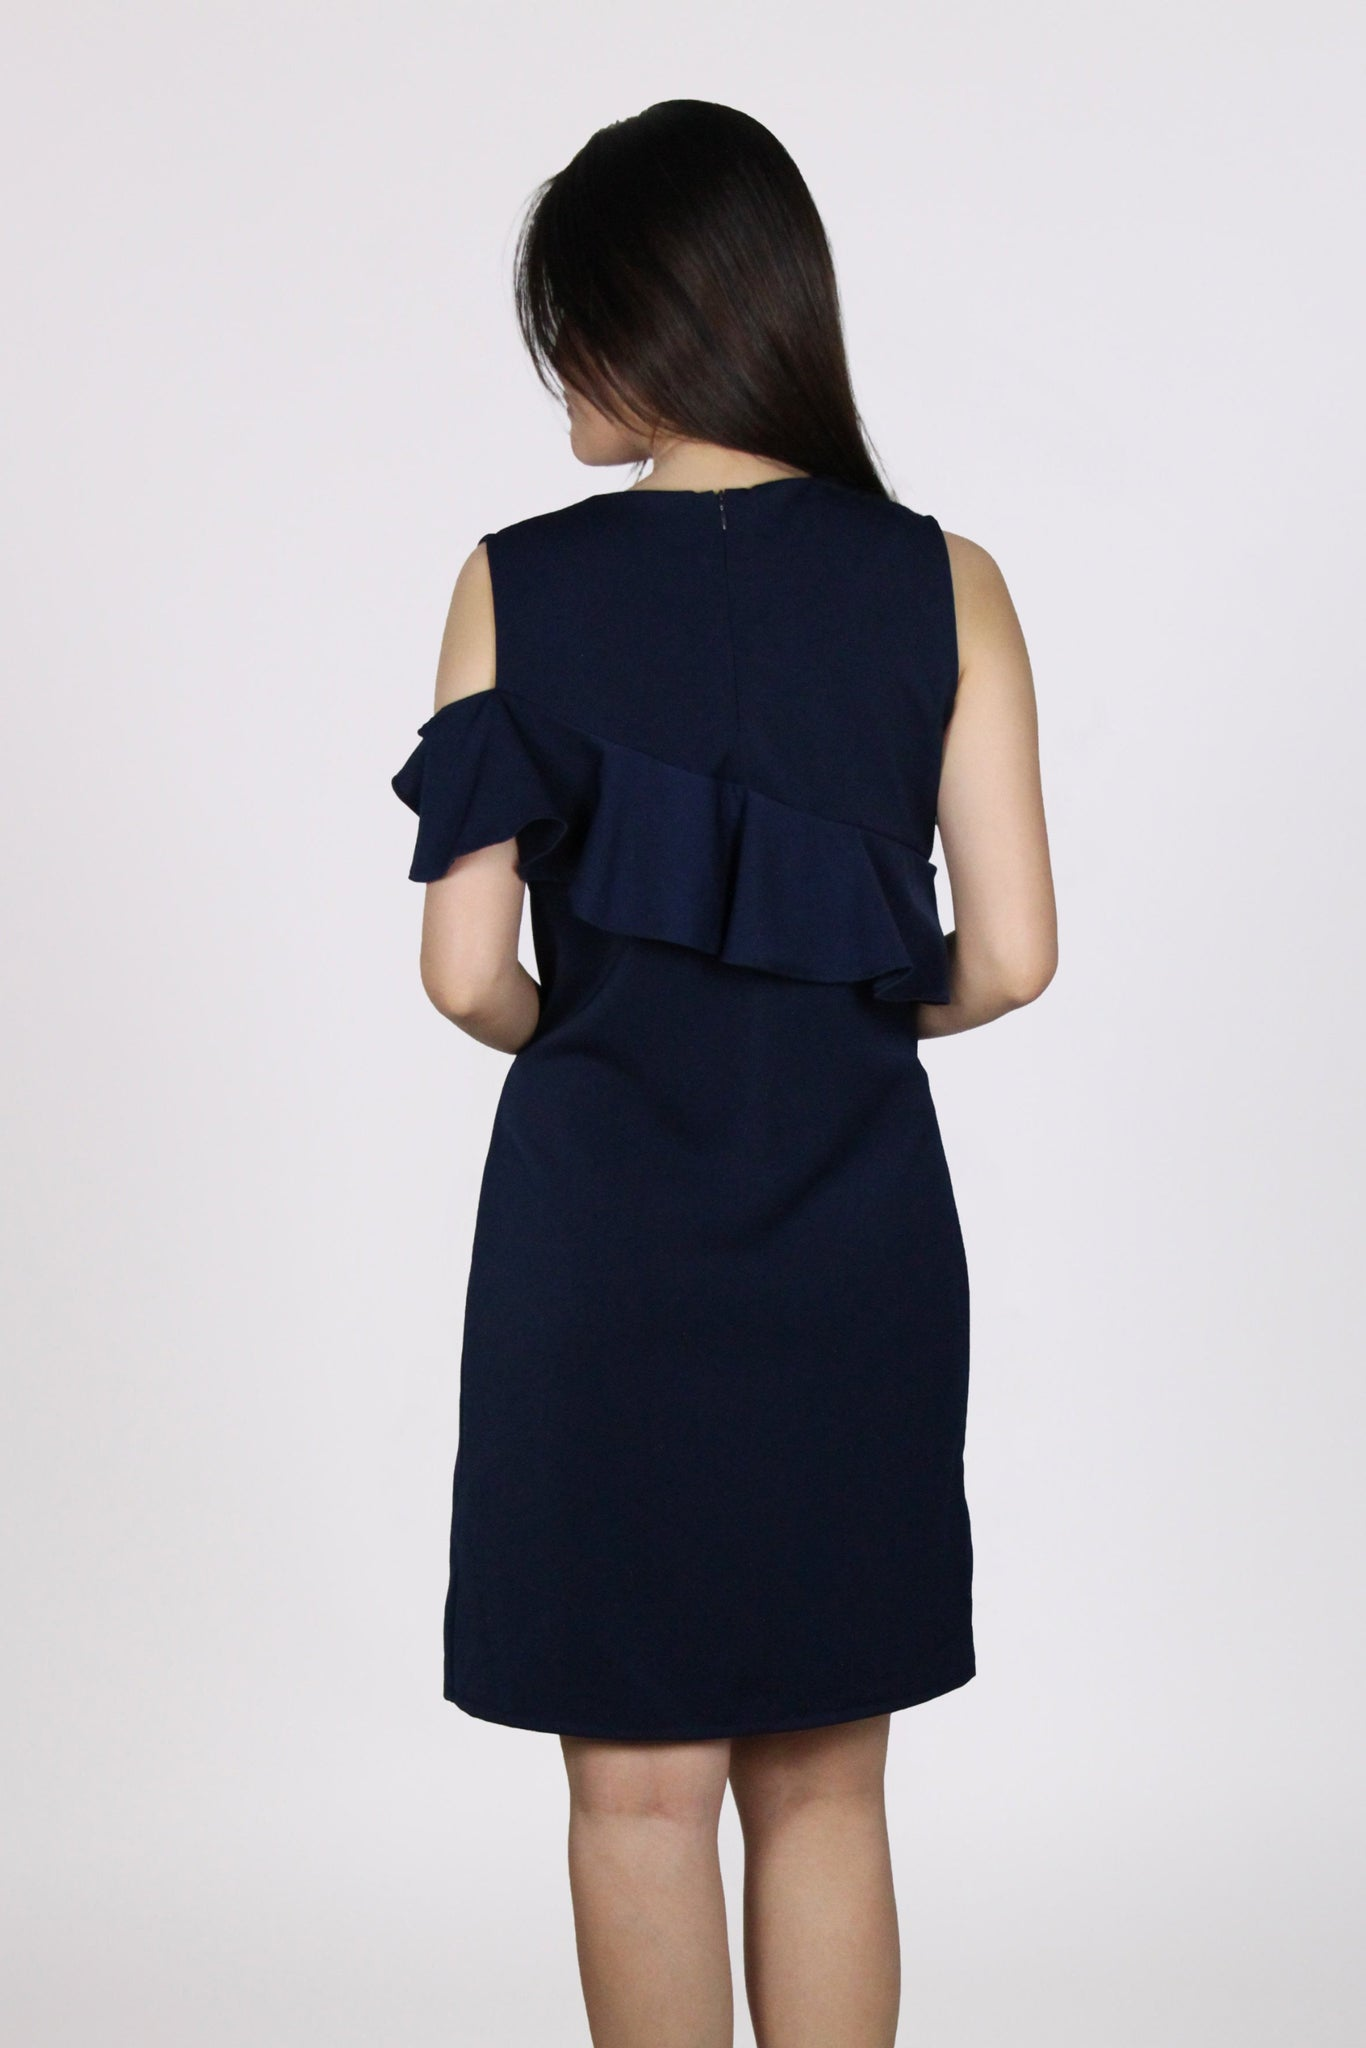 Single Cold Shoulder Ruffles Shift Dress in Navy Blue